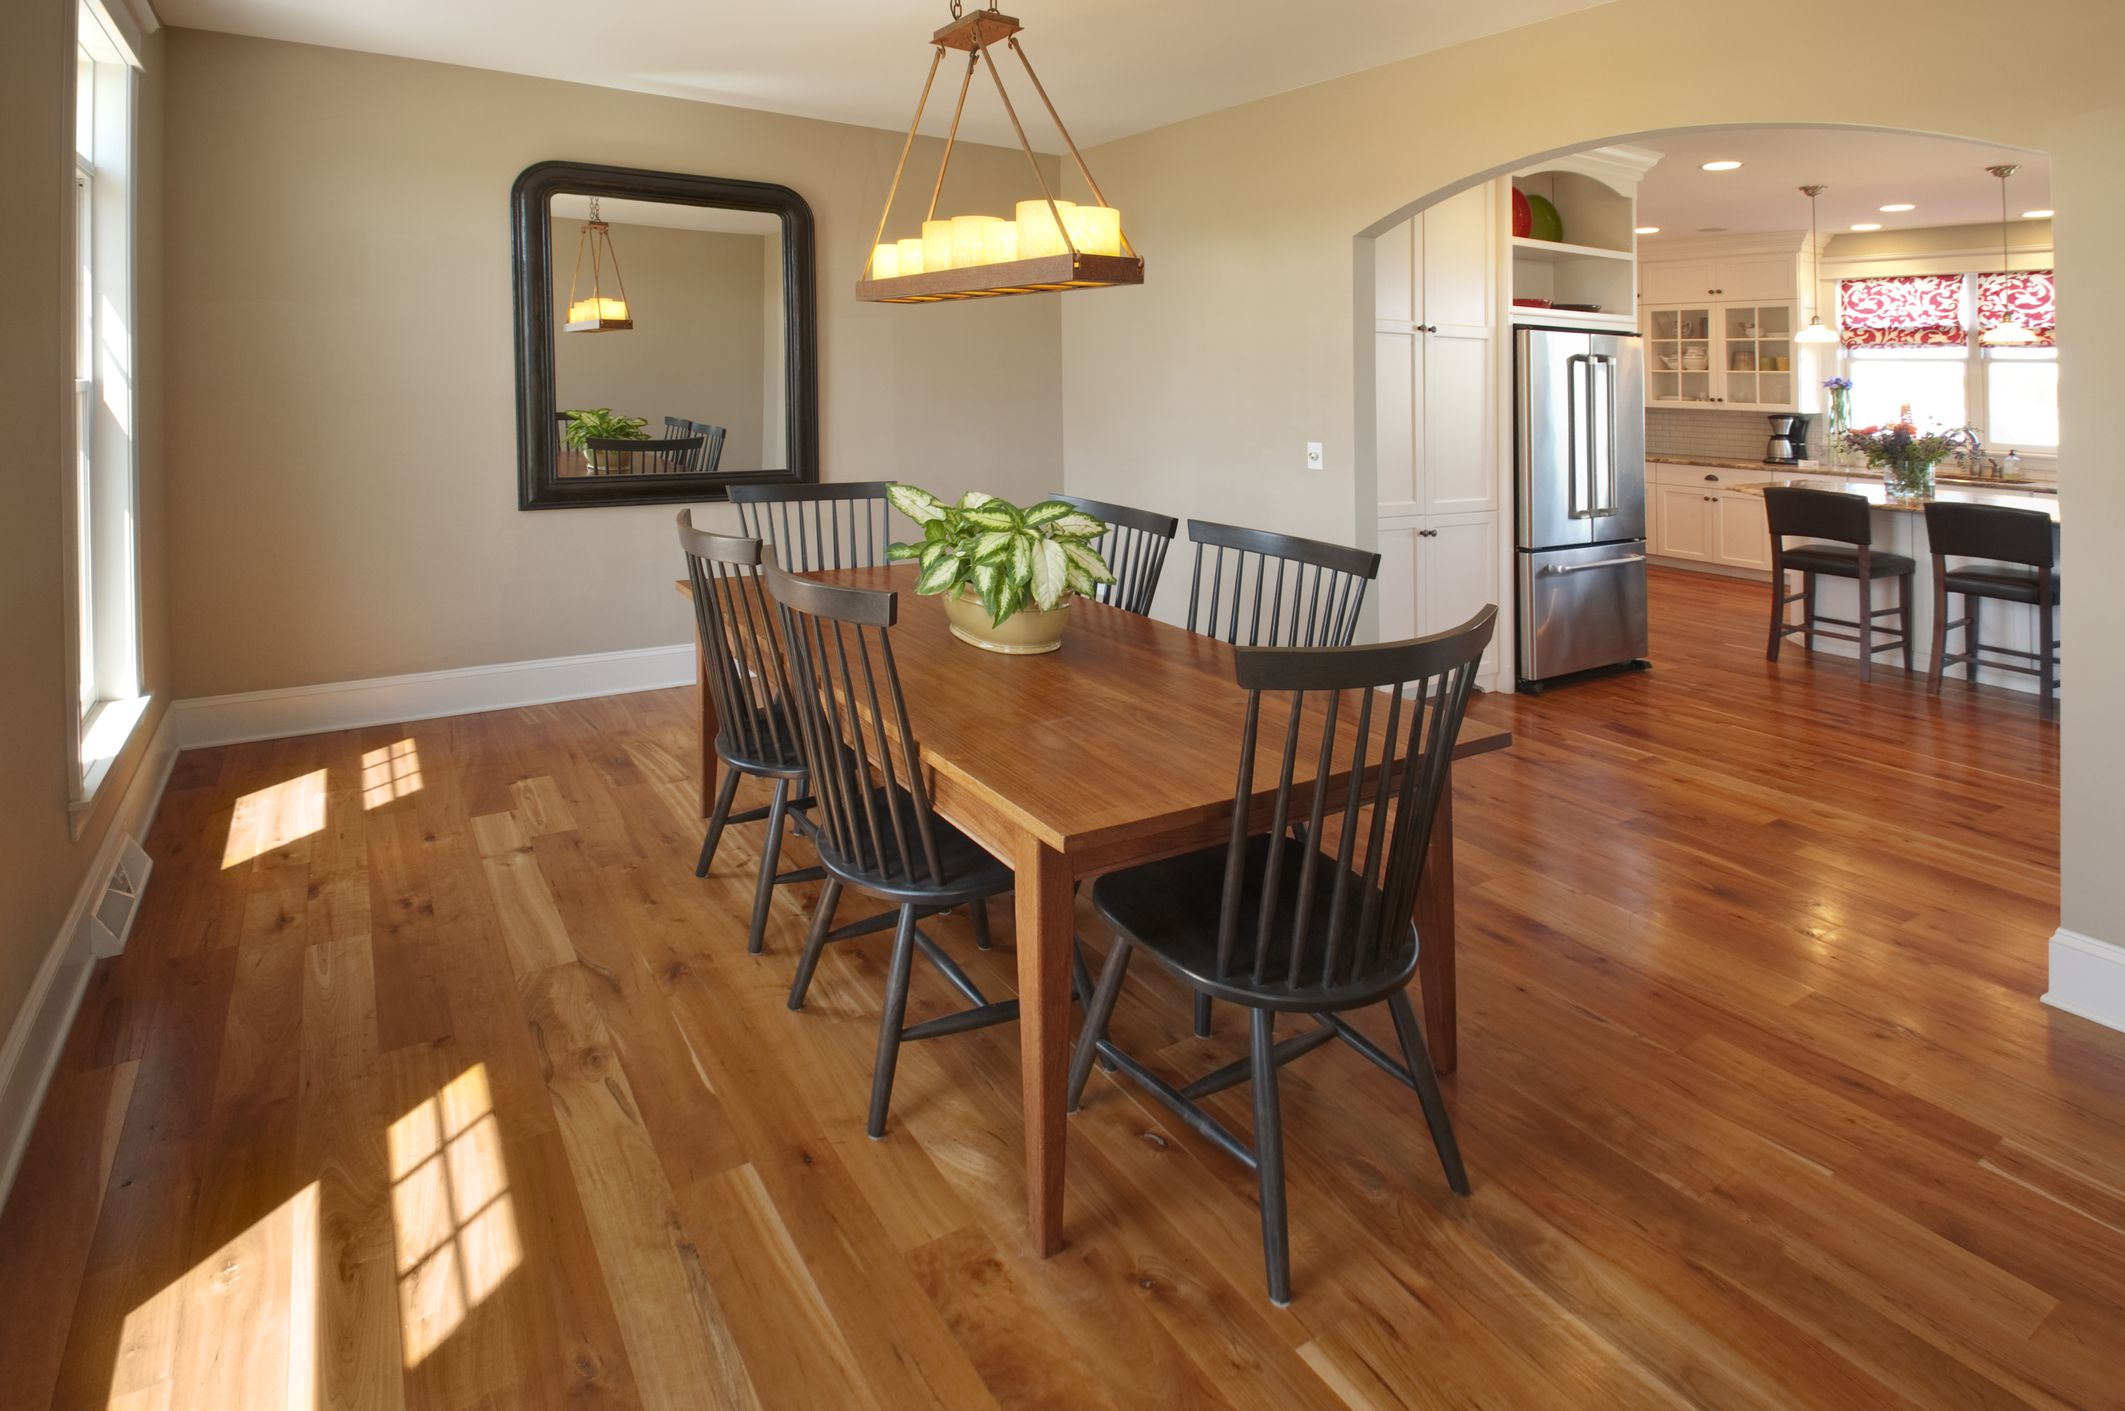 Laminate vs Hardwood Flooring - How They Compare